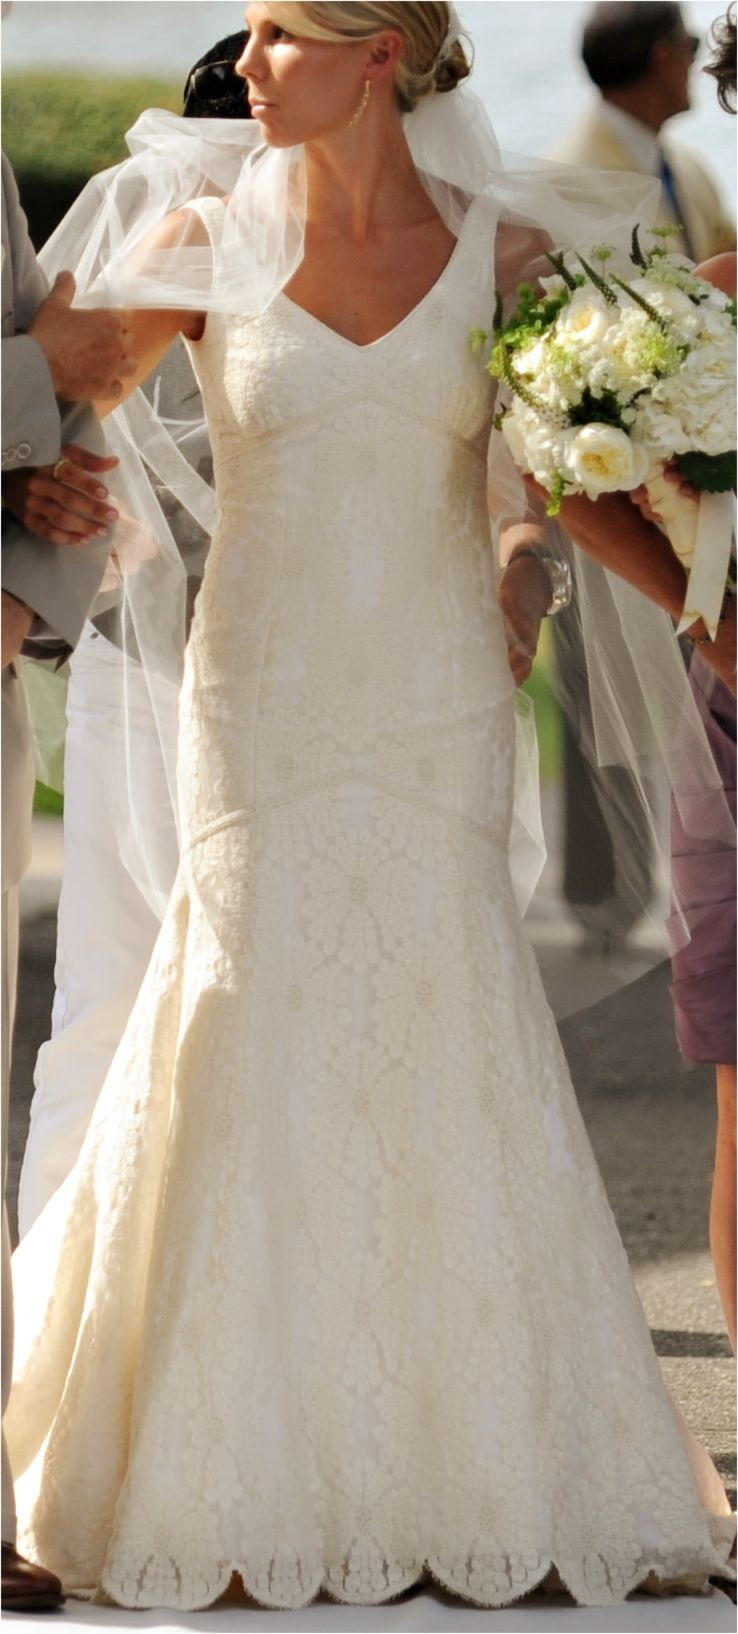 Lace trial fitted dress